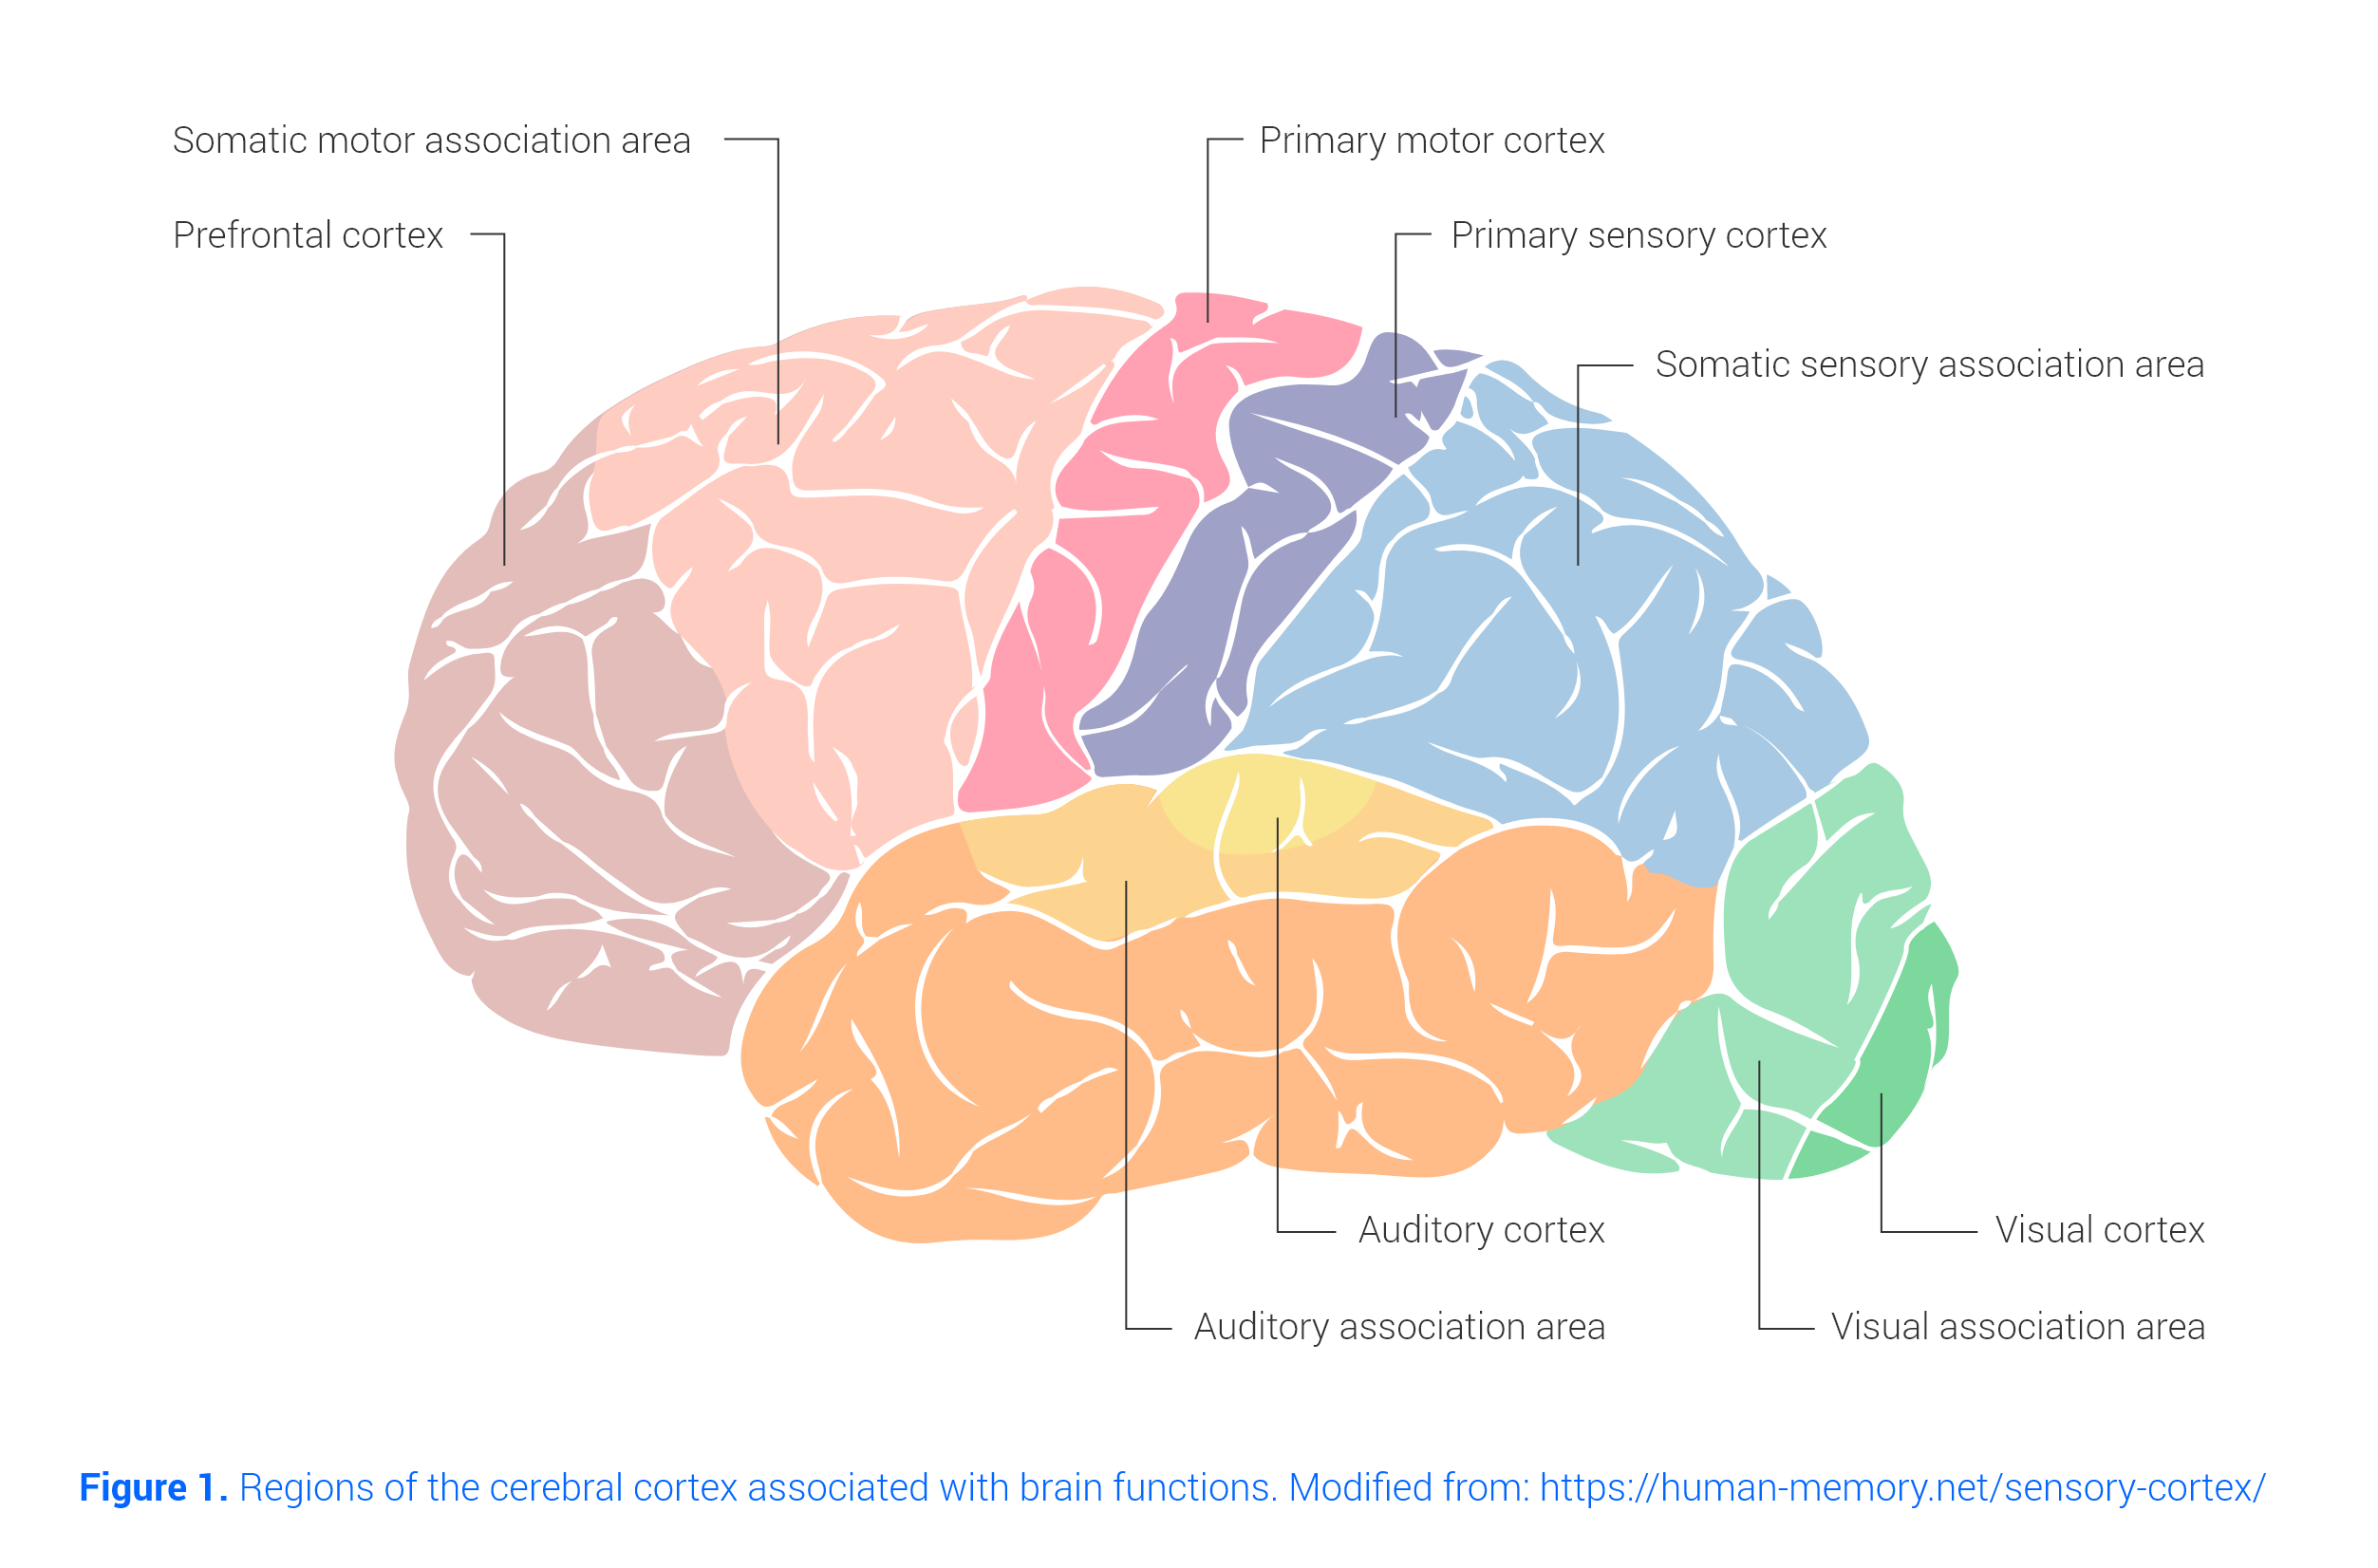 image of the brain areas